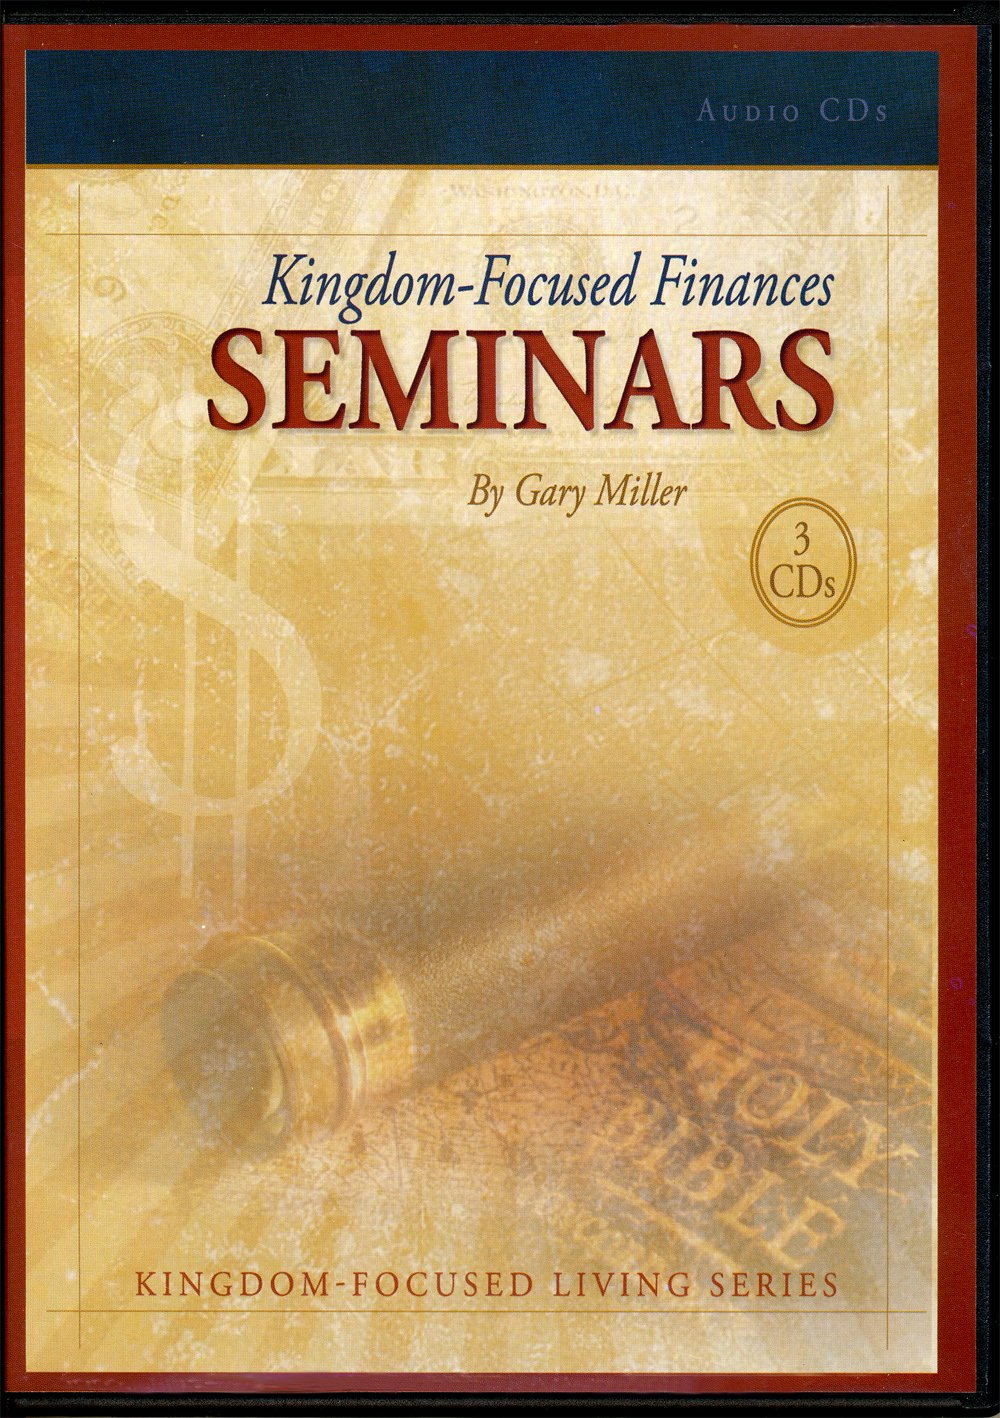 Kingdom-Focused Finances Seminars Audio CDs